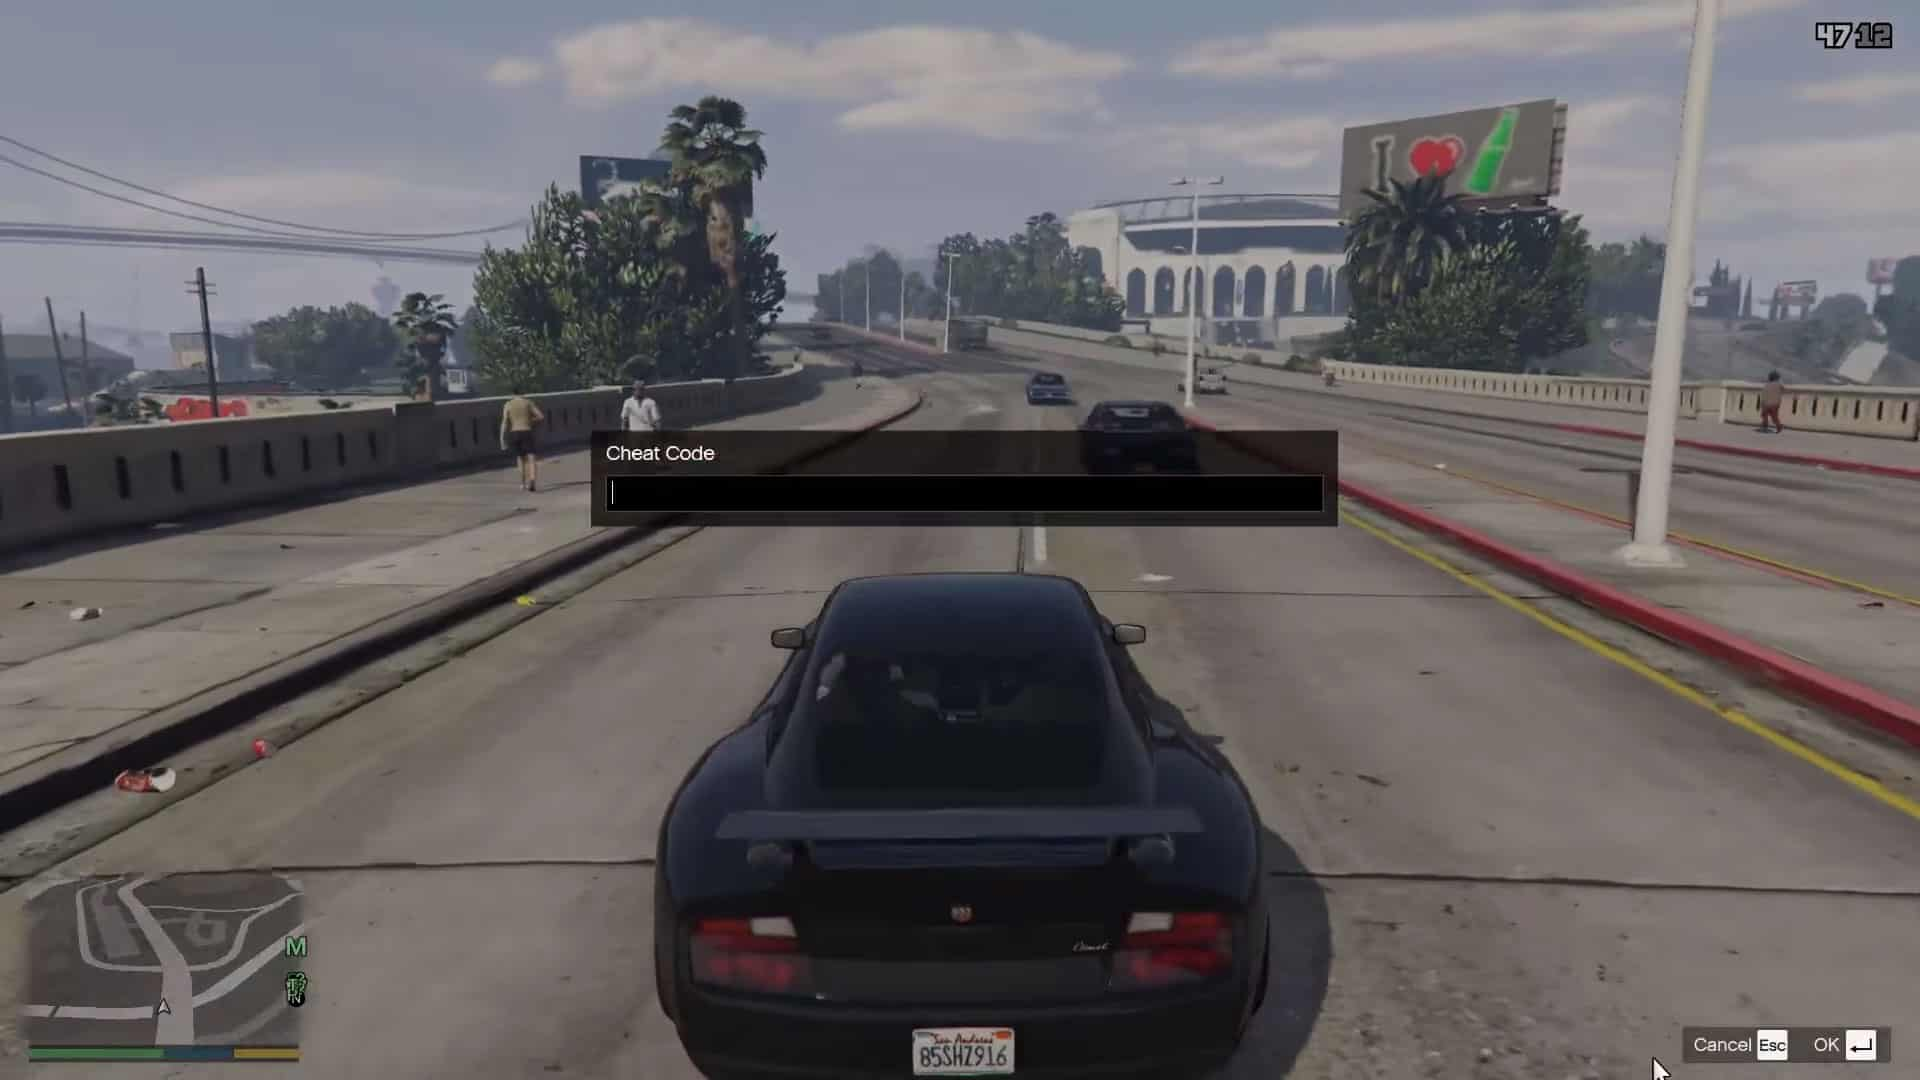 GTA 5 Cheats On PC: Including Abilities, Invincibility, Cars